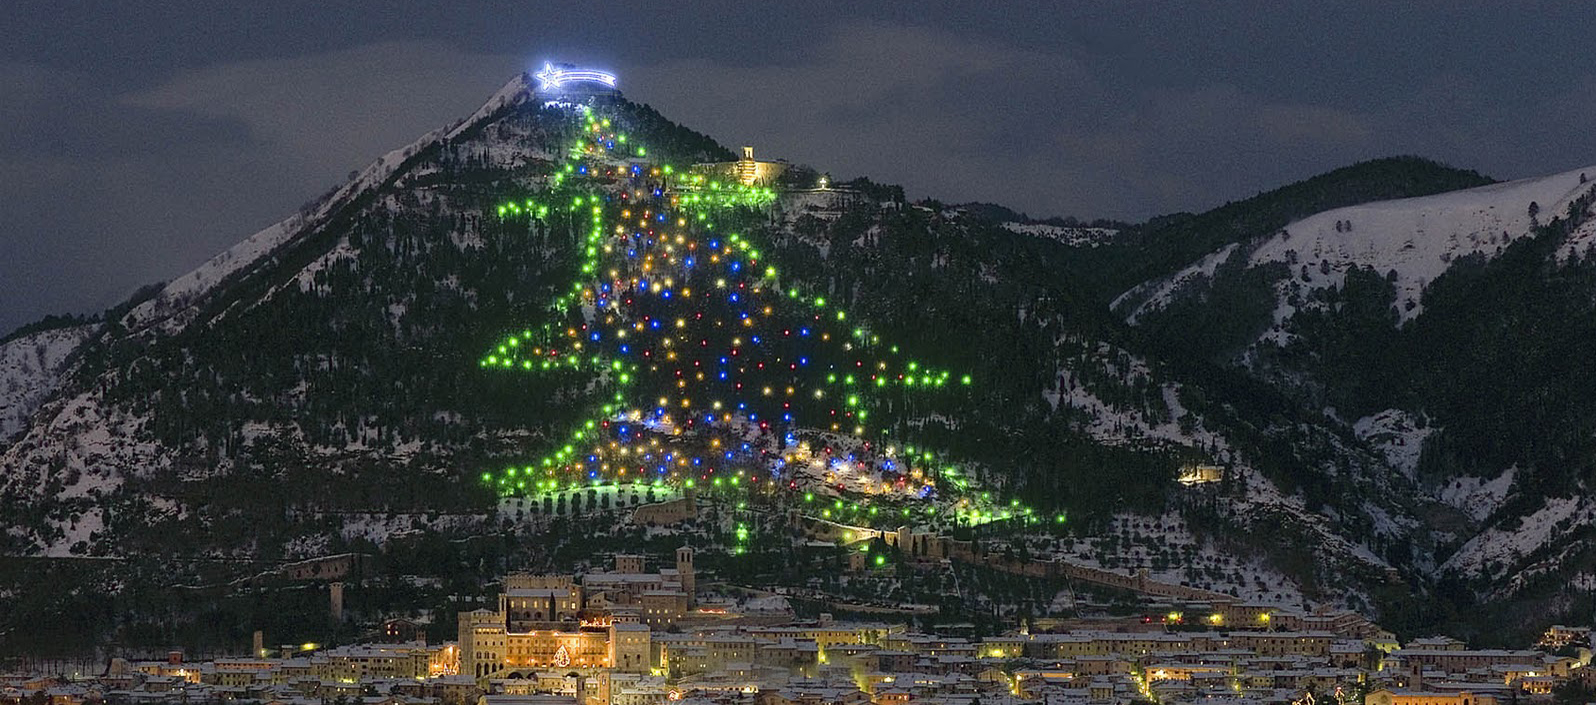 Gubbio biggest Christmas tree